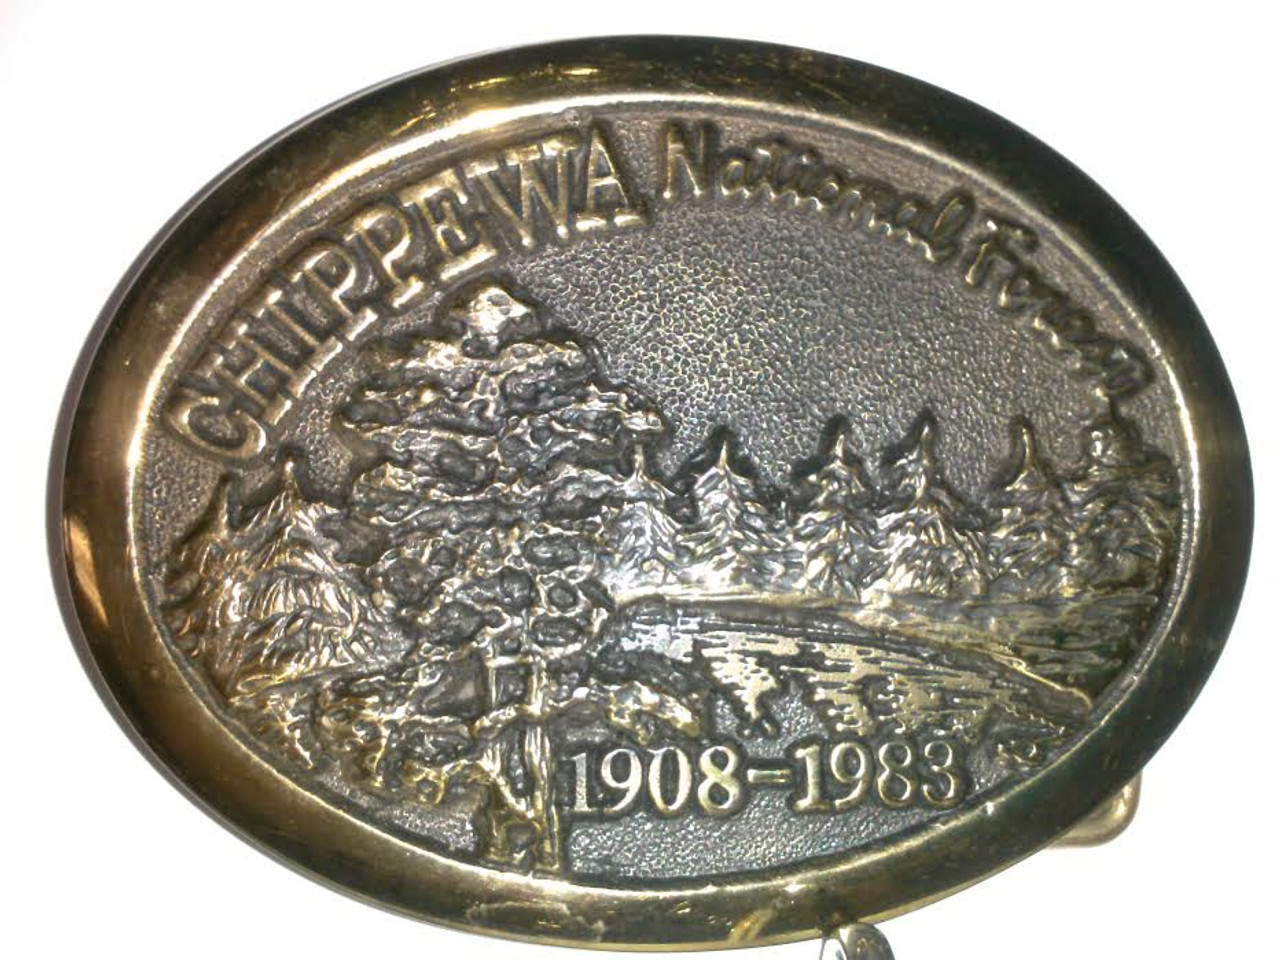 Chippewa National Forest 1908-1983 Buckle